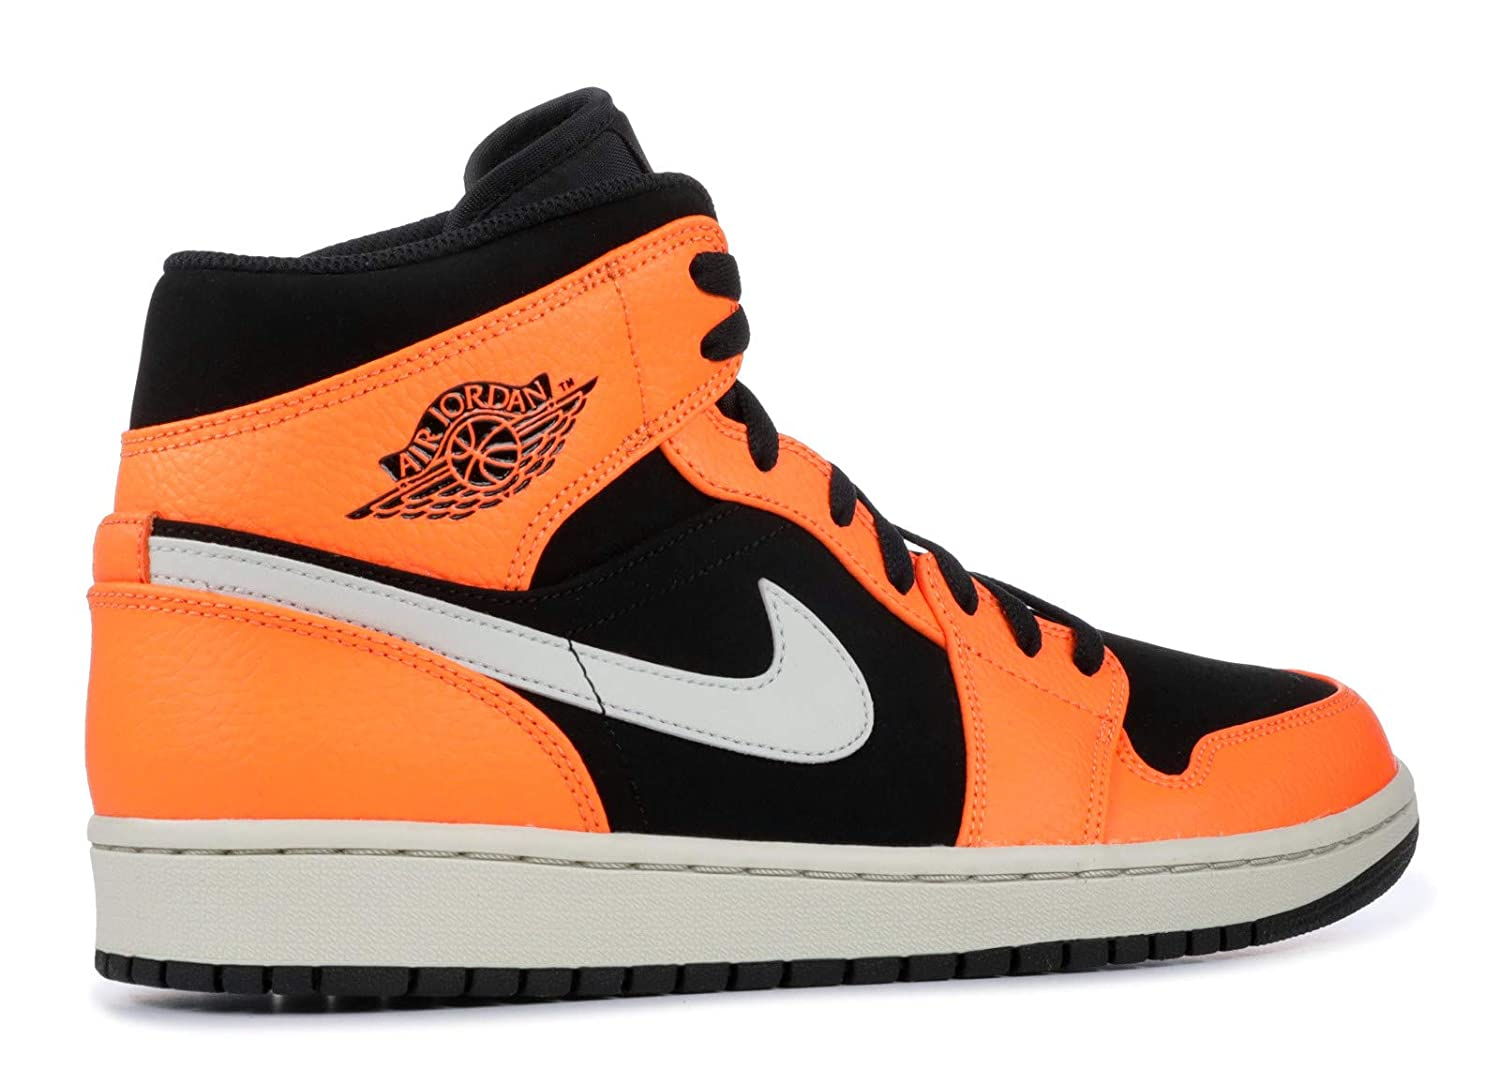 quality design 2b574 c0ead Amazon.com   Air Jordan 1 Mid - 554724-062 - Size 14   Basketball